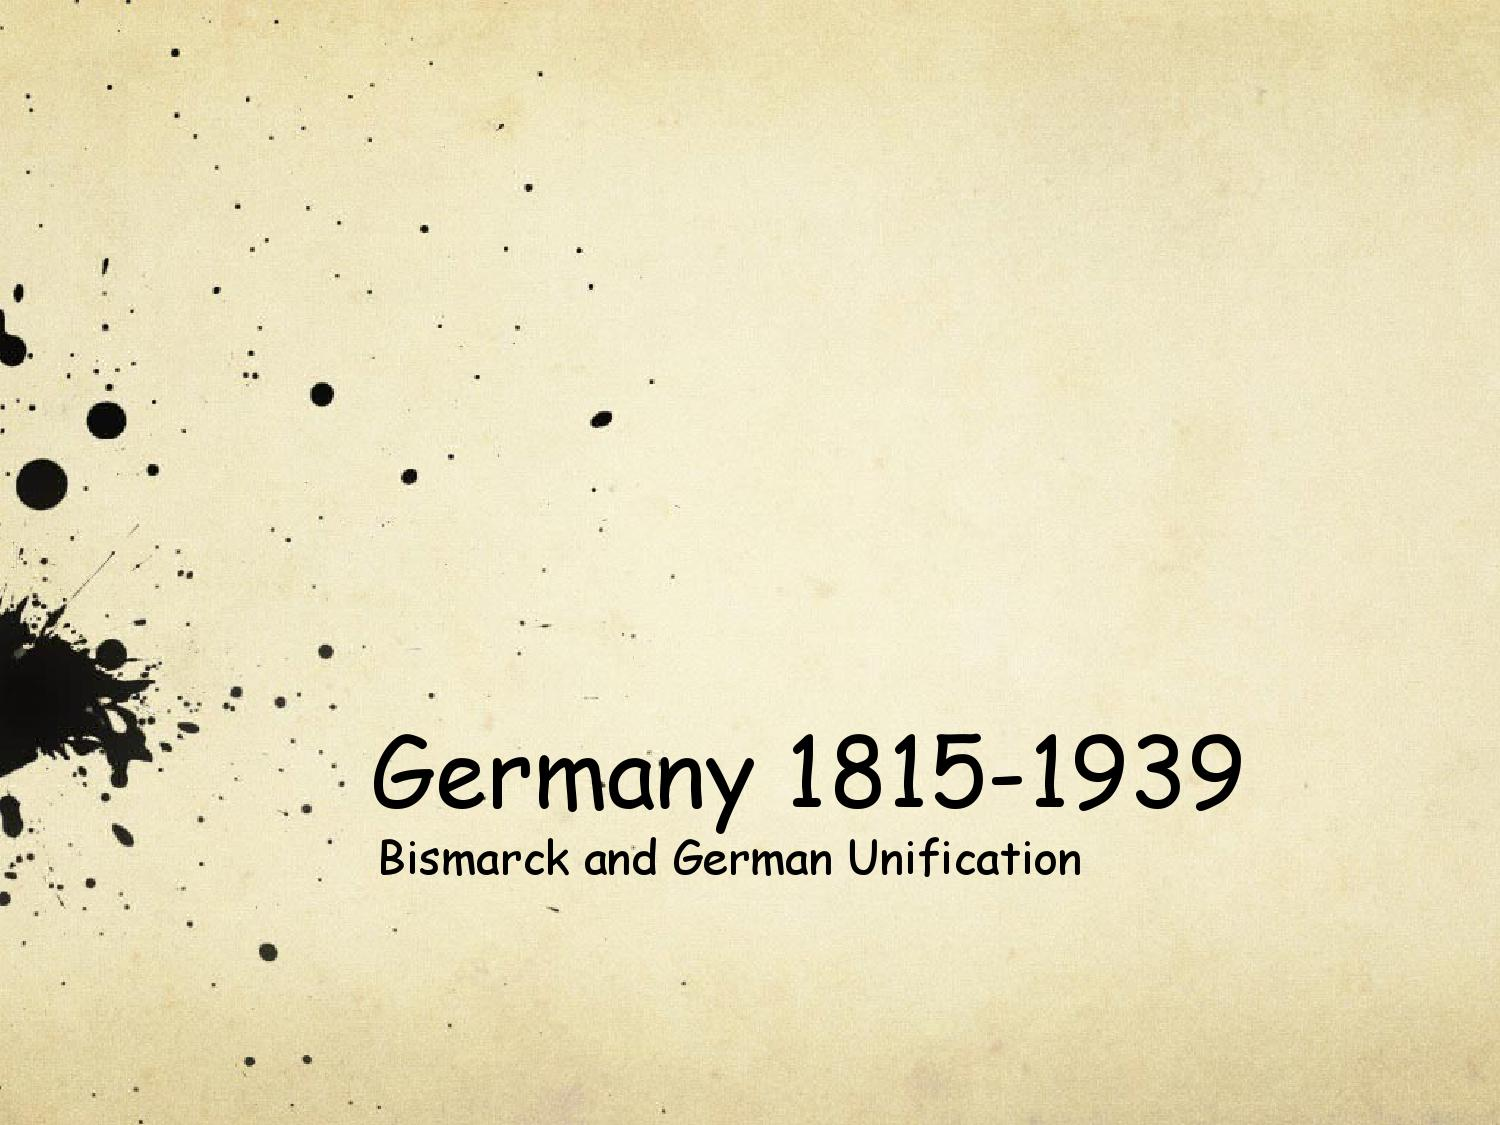 bismarck and german unification aj by histmrj